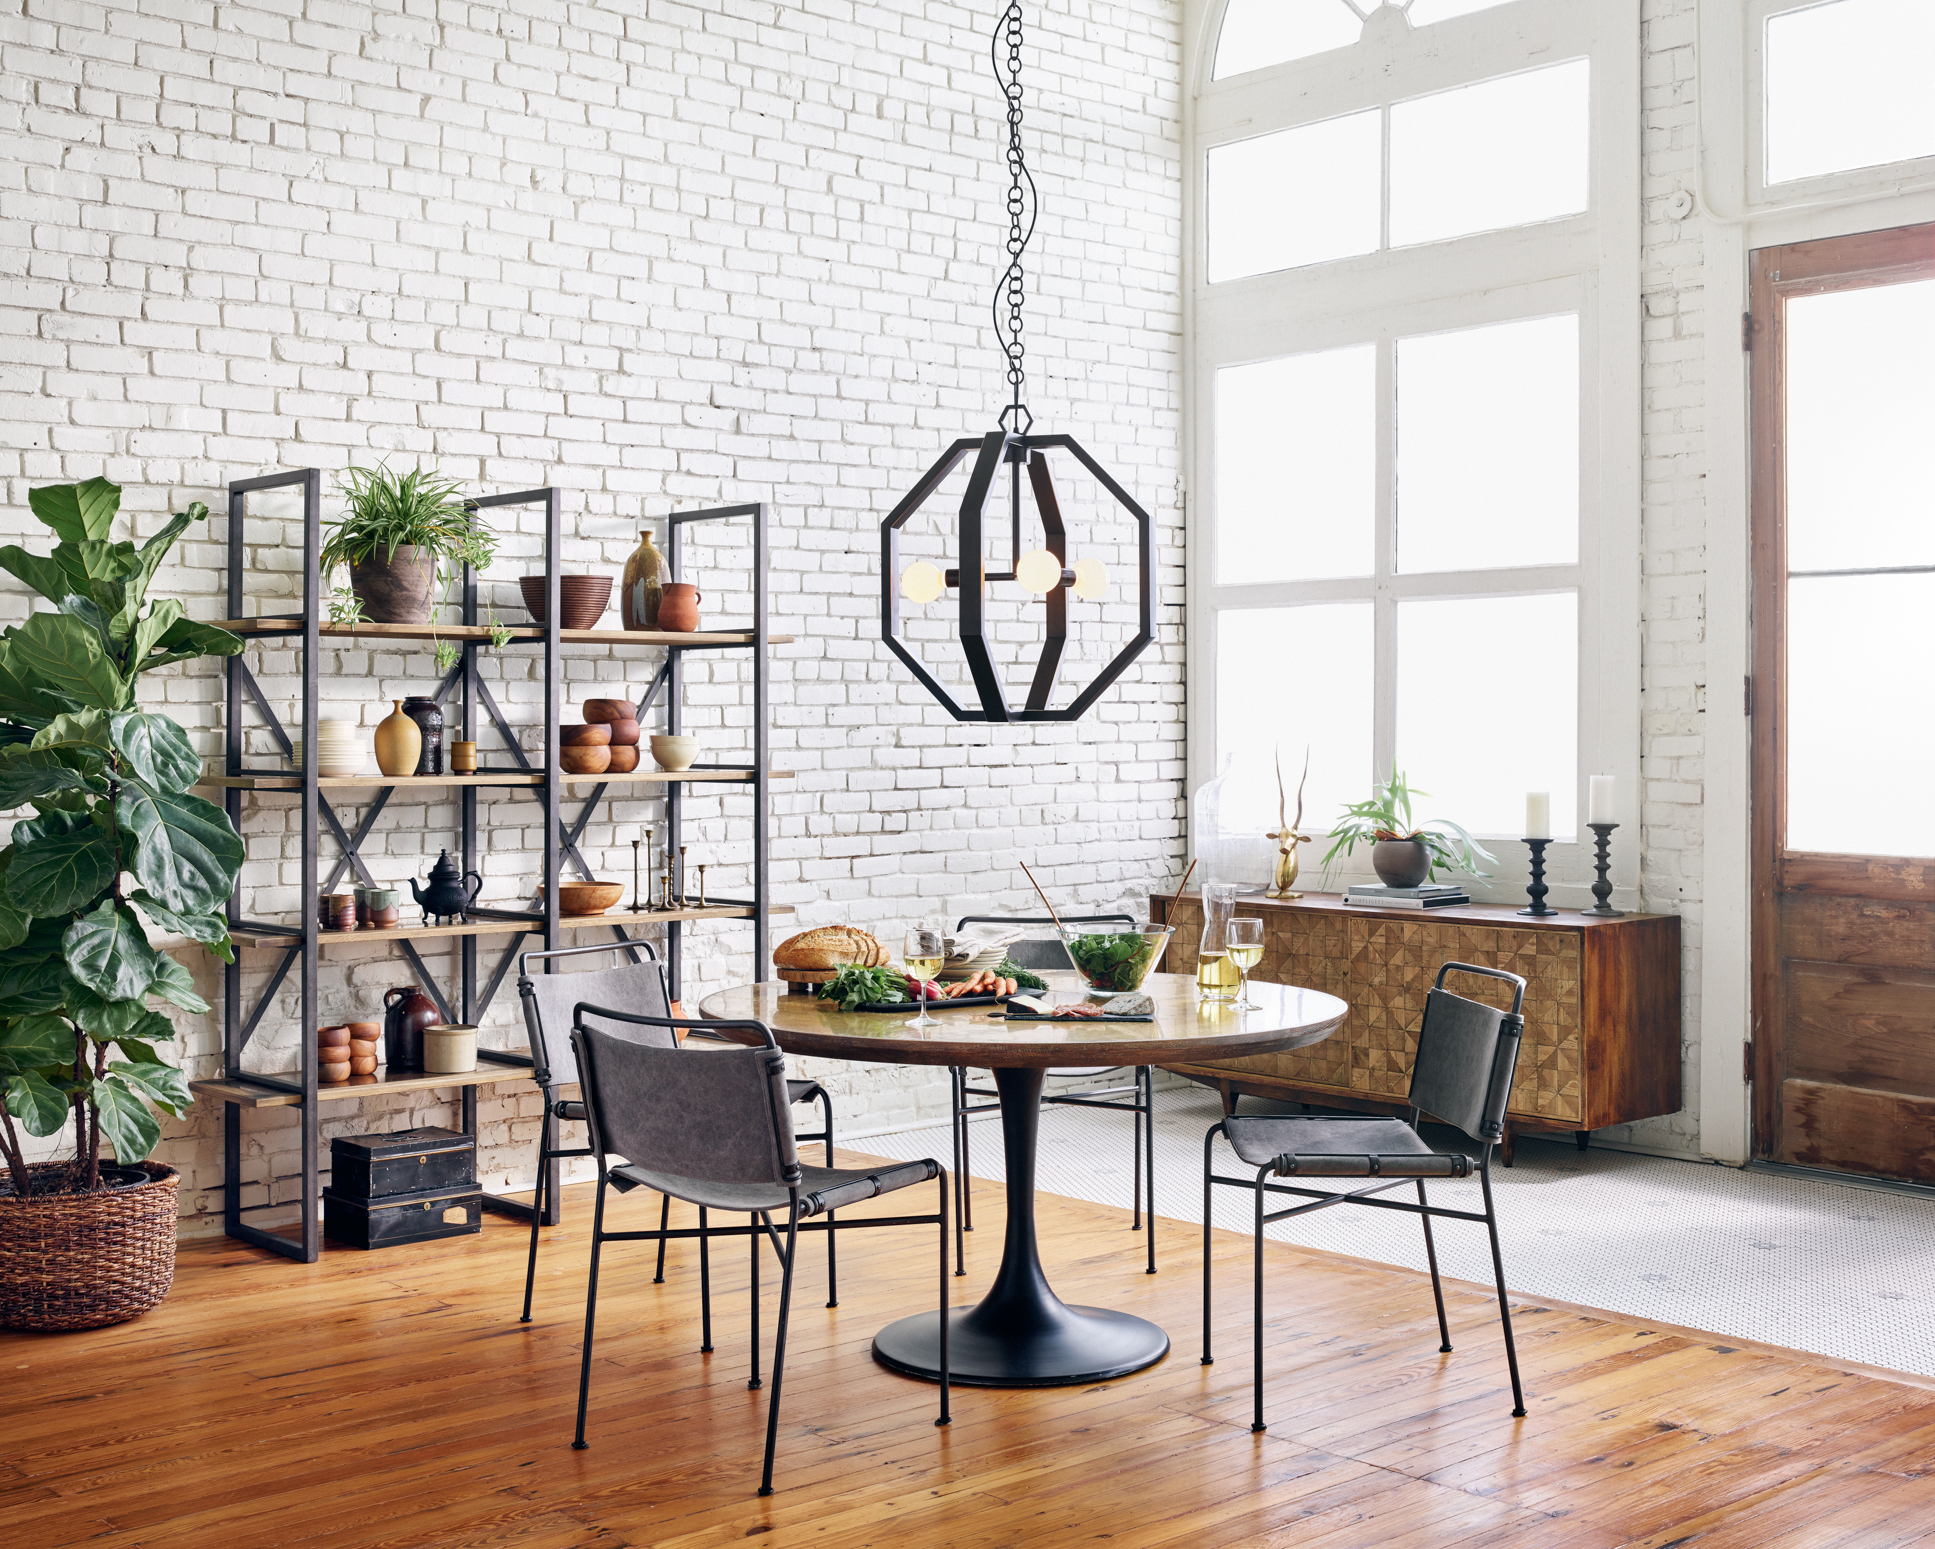 Of Course, We Canu0027t Overlook The Most Obvious Use For Bistro Tables. With A  Name That Brings To Mind Quaint French Dining, It Only Makes Sense That  Bistro ...